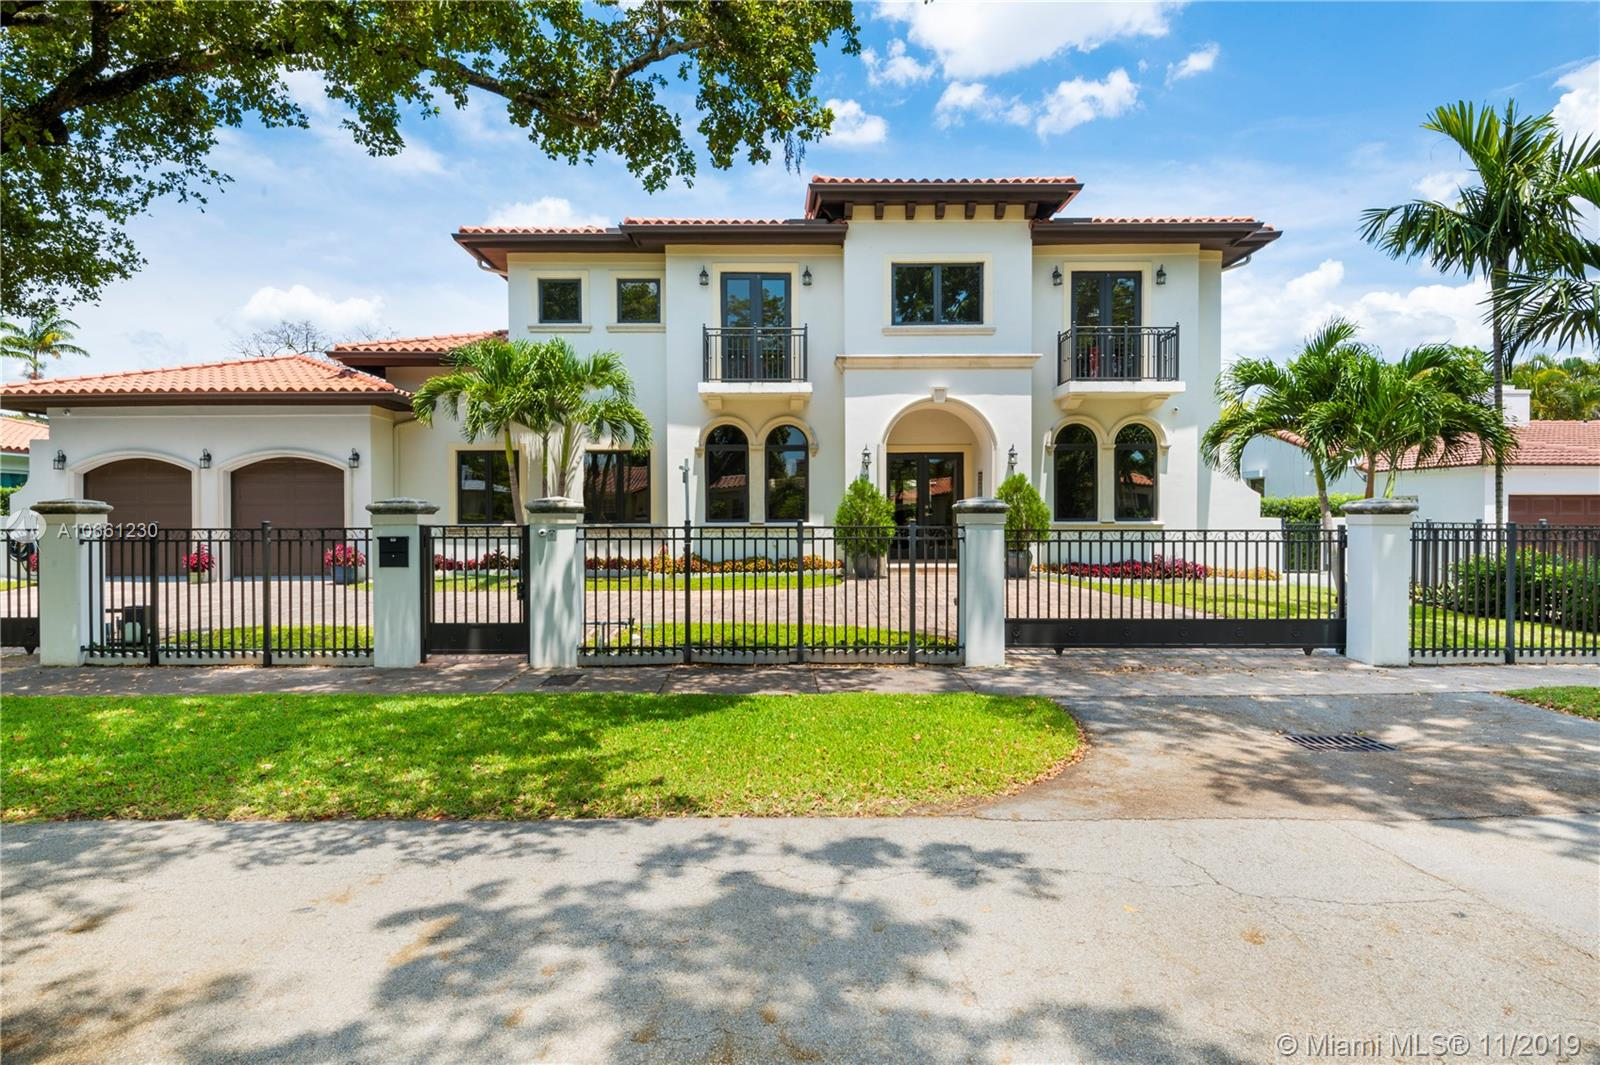 629 Madeira Ave, Coral Gables, FL 33134